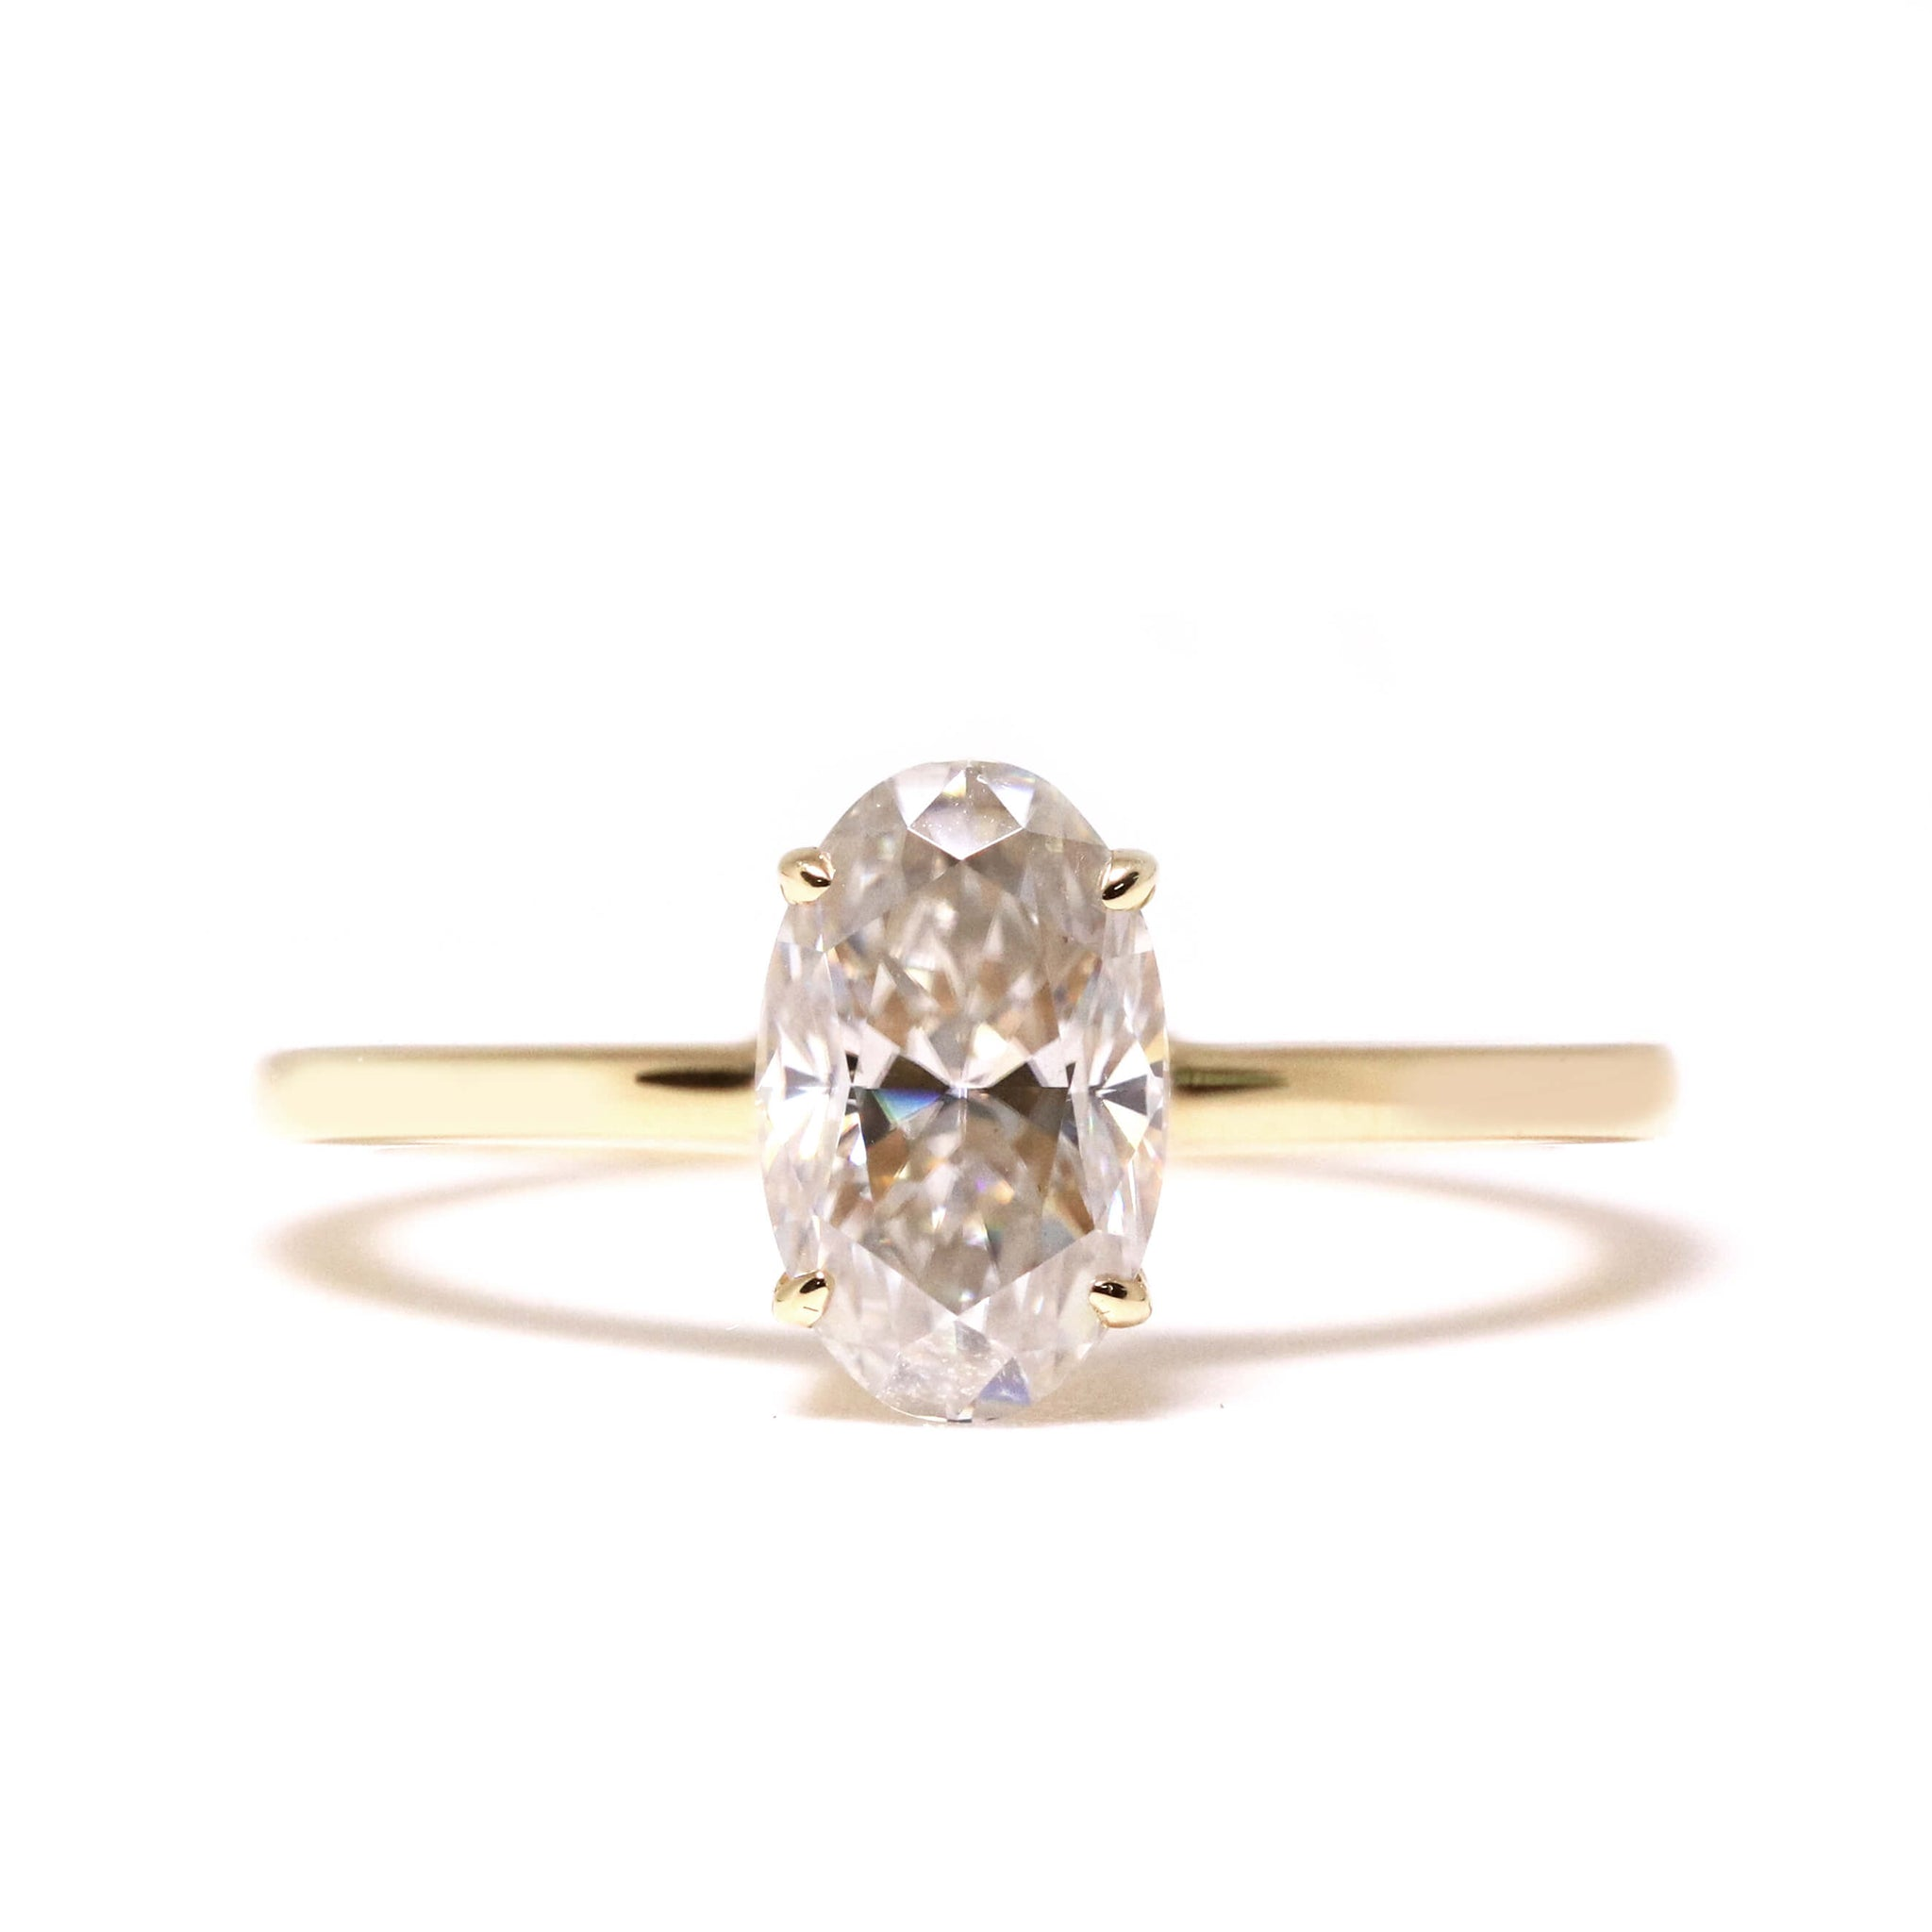 1 Carat Oval Moissanite Ring in 18K Yellow Gold Ring